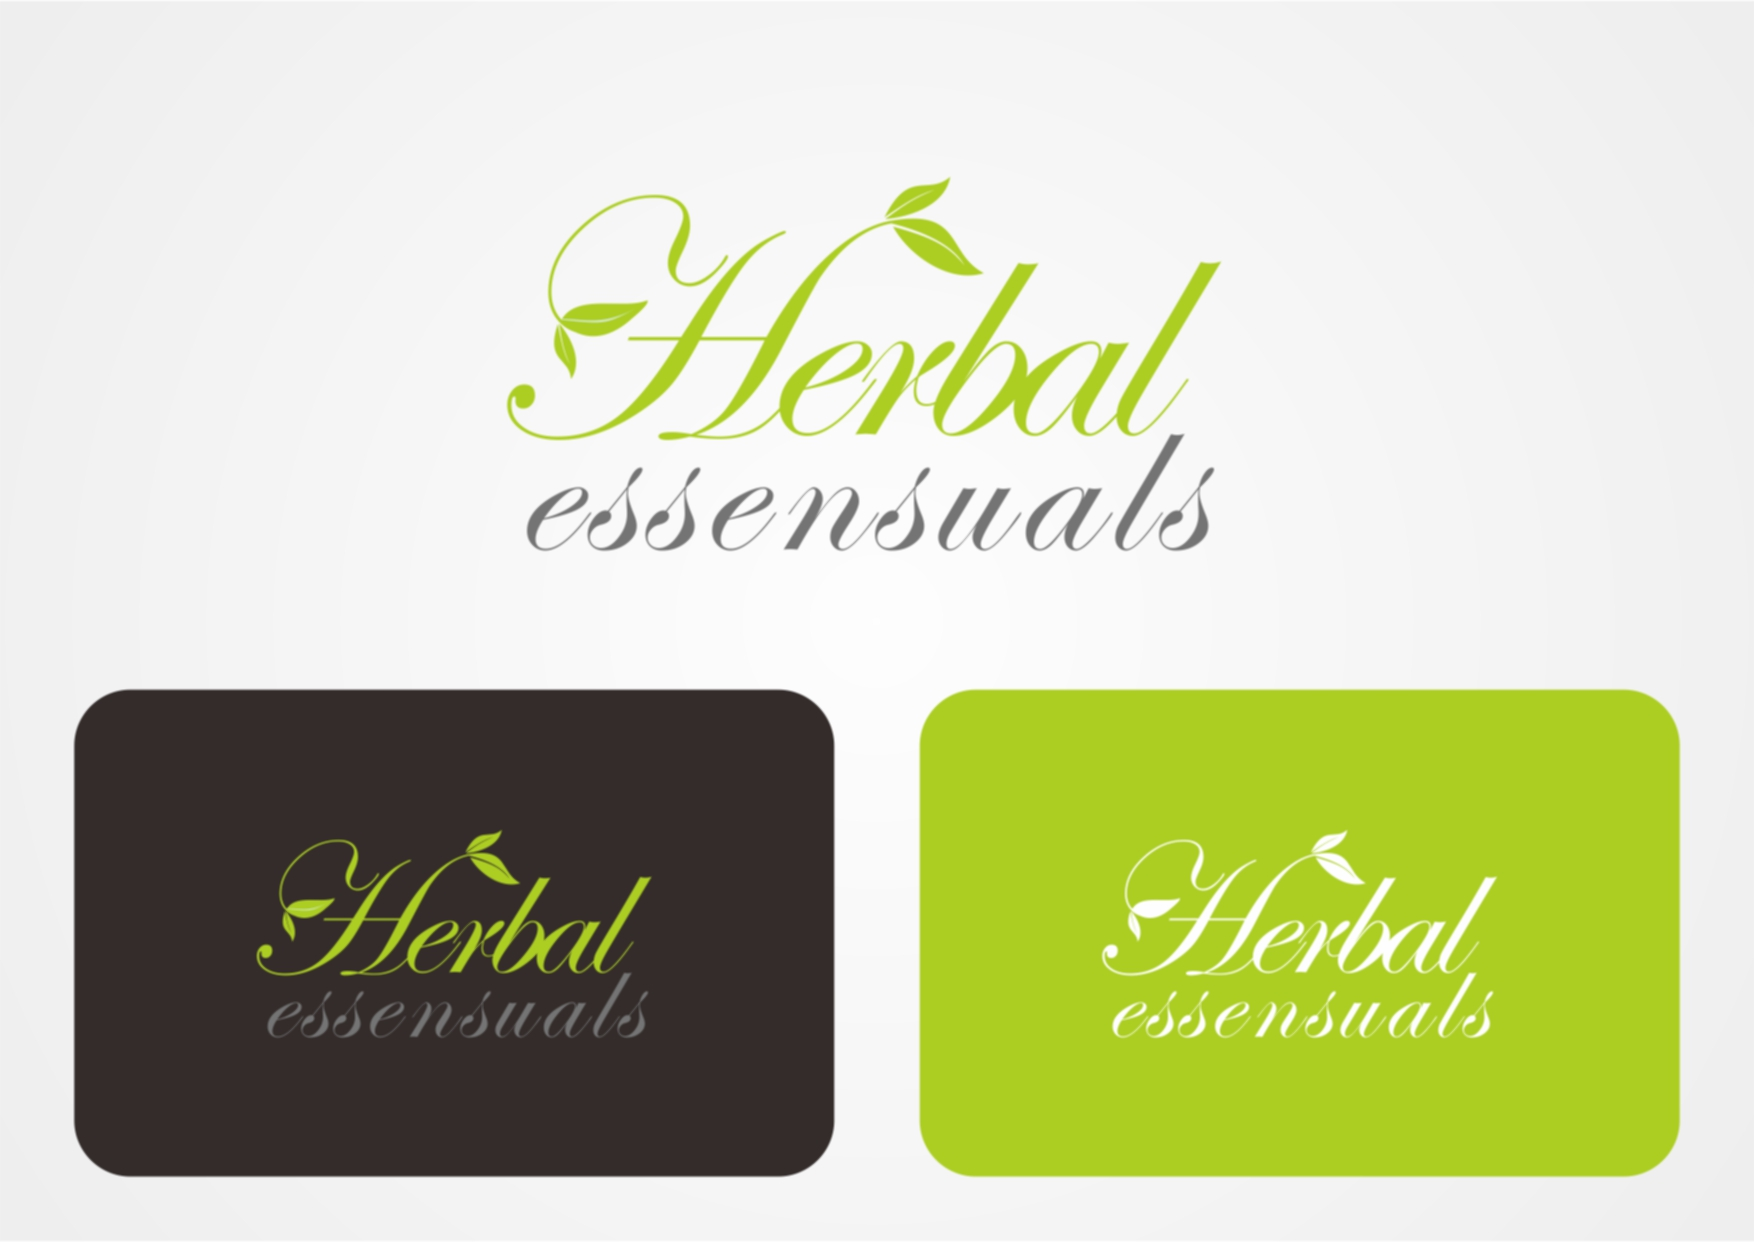 Logo Design by Private User - Entry No. 29 in the Logo Design Contest Captivating Logo Design for Herbal Essensuals.